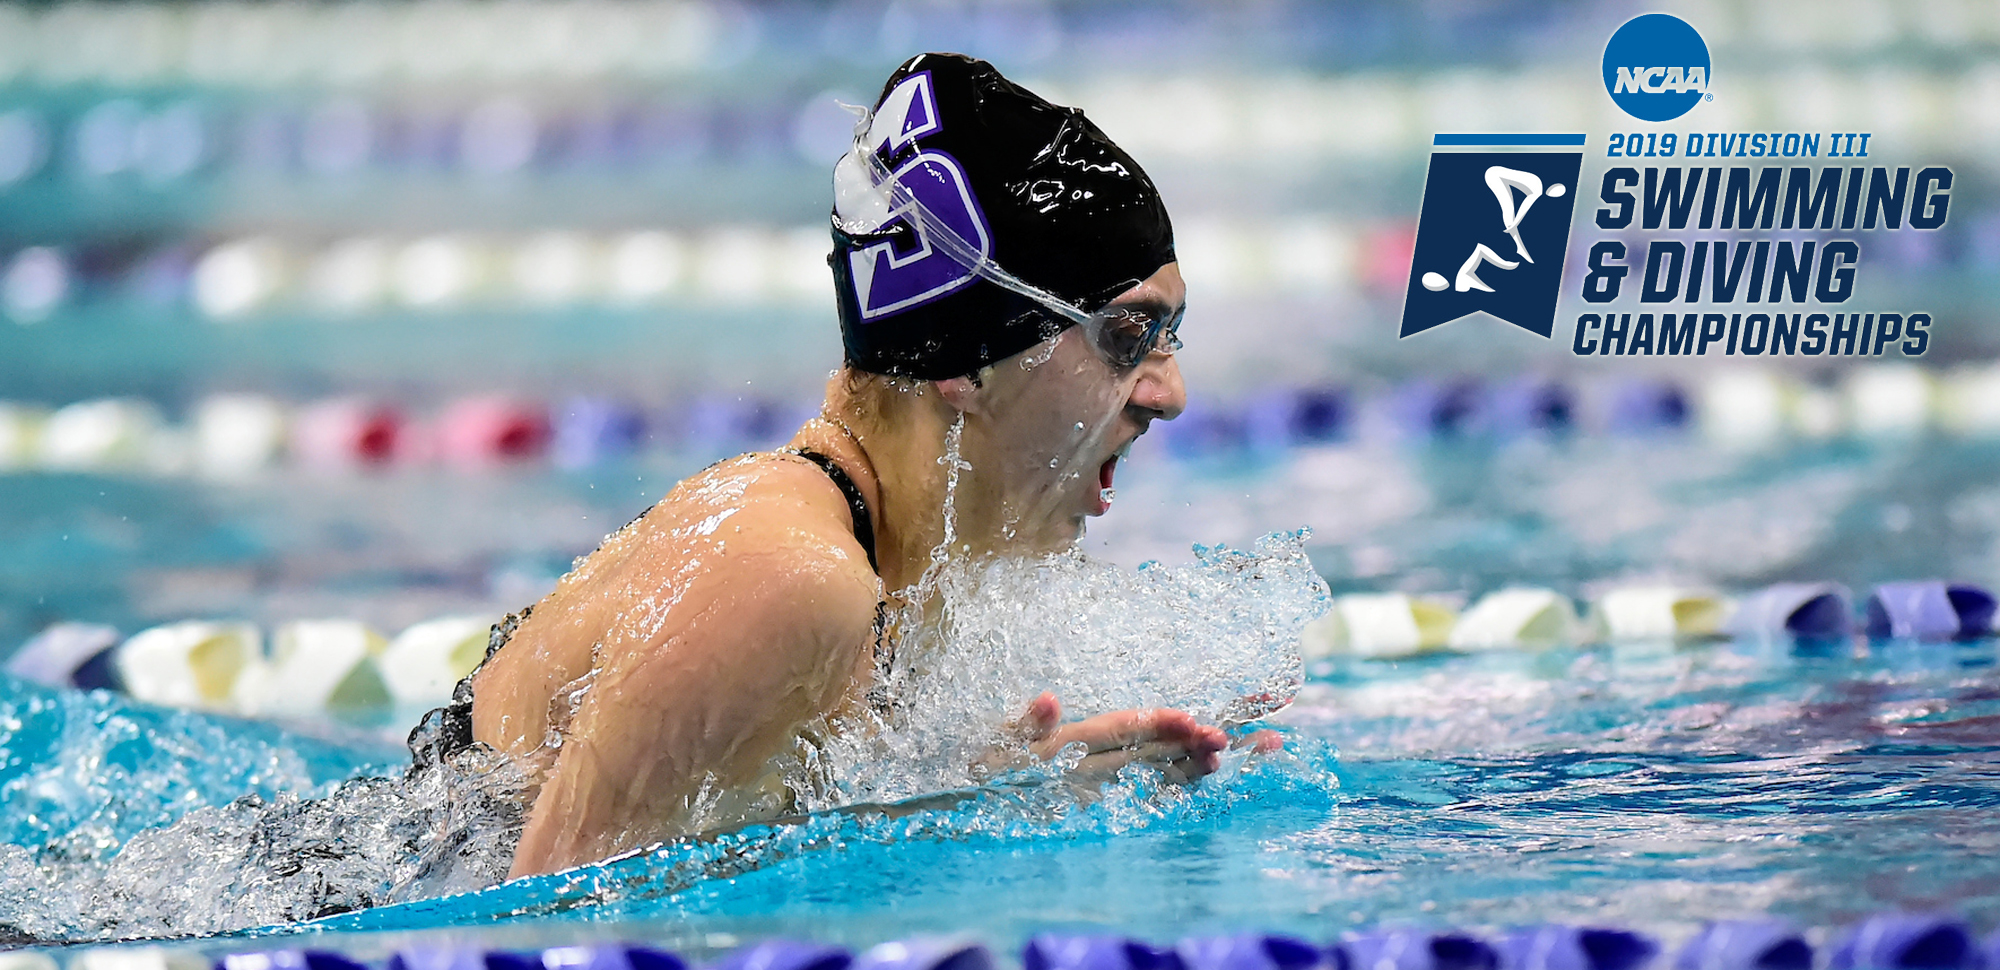 Sophomore Audrey Campo will compete in three events at the 2019 NCAA Division III Swimming & Diving Championships, which begin Wednesday in Greensboro, N.C.